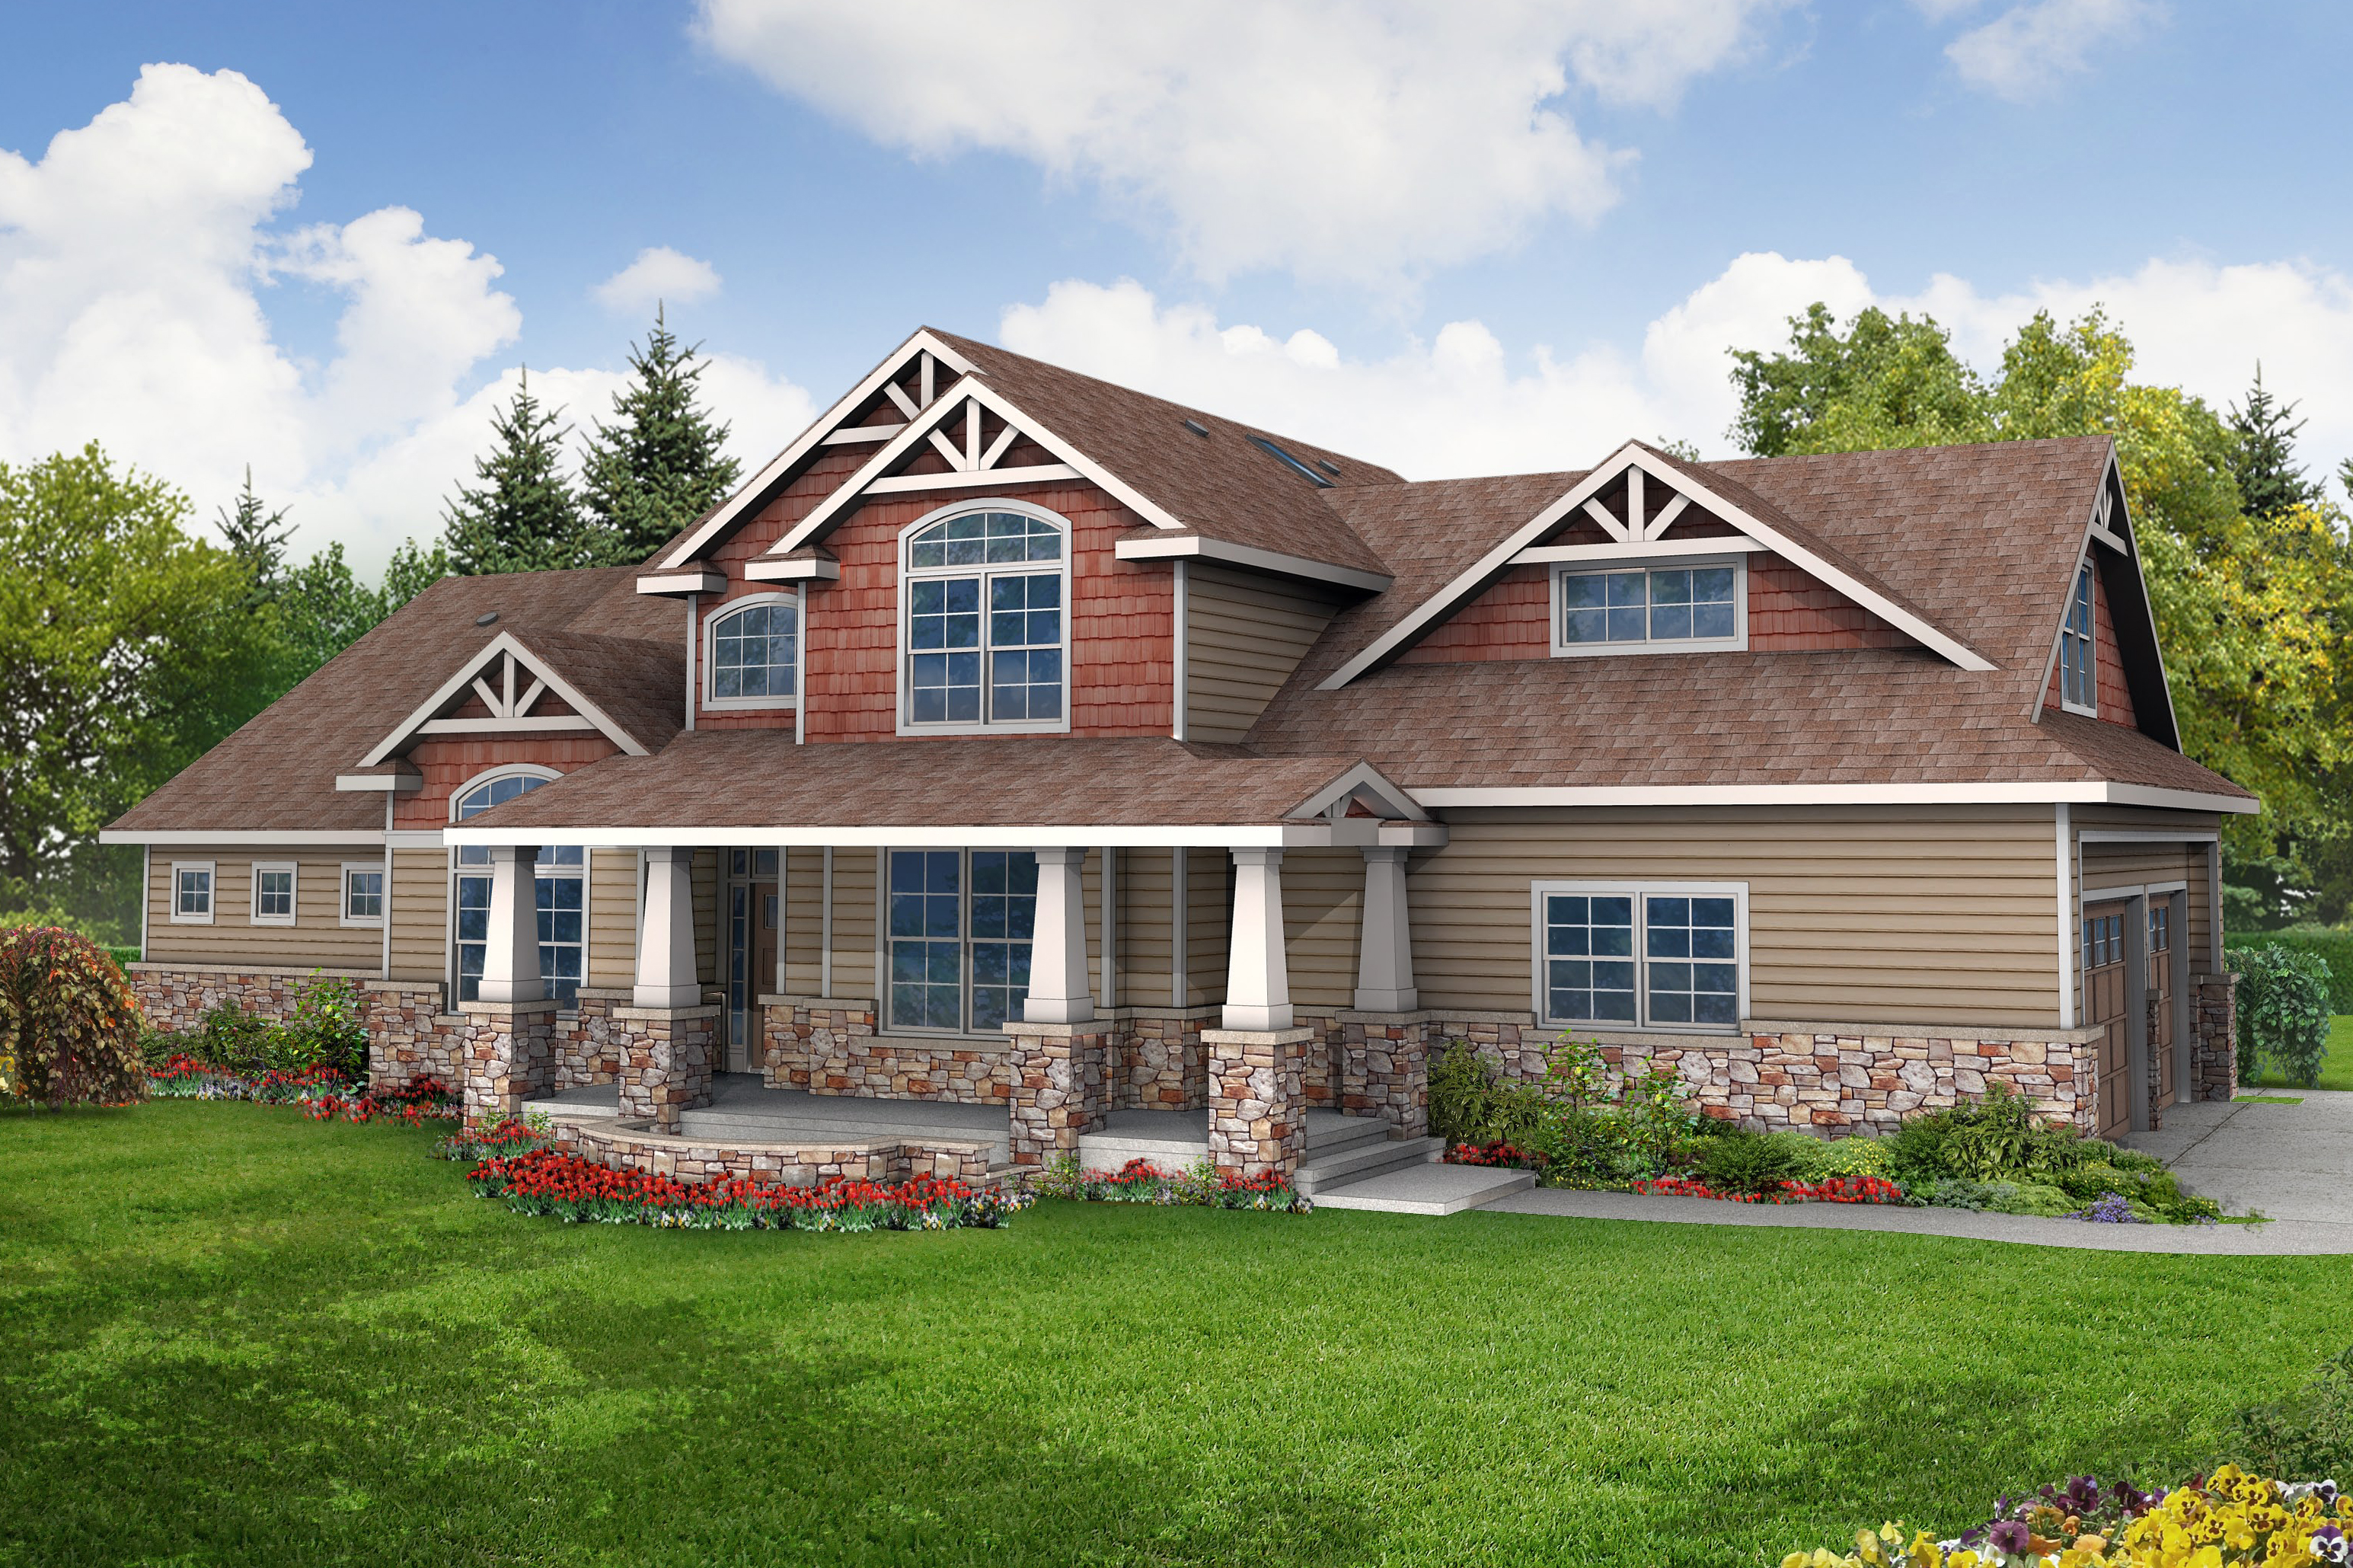 craftsman house plans craftsman home plans craftsman On craftsman house plans